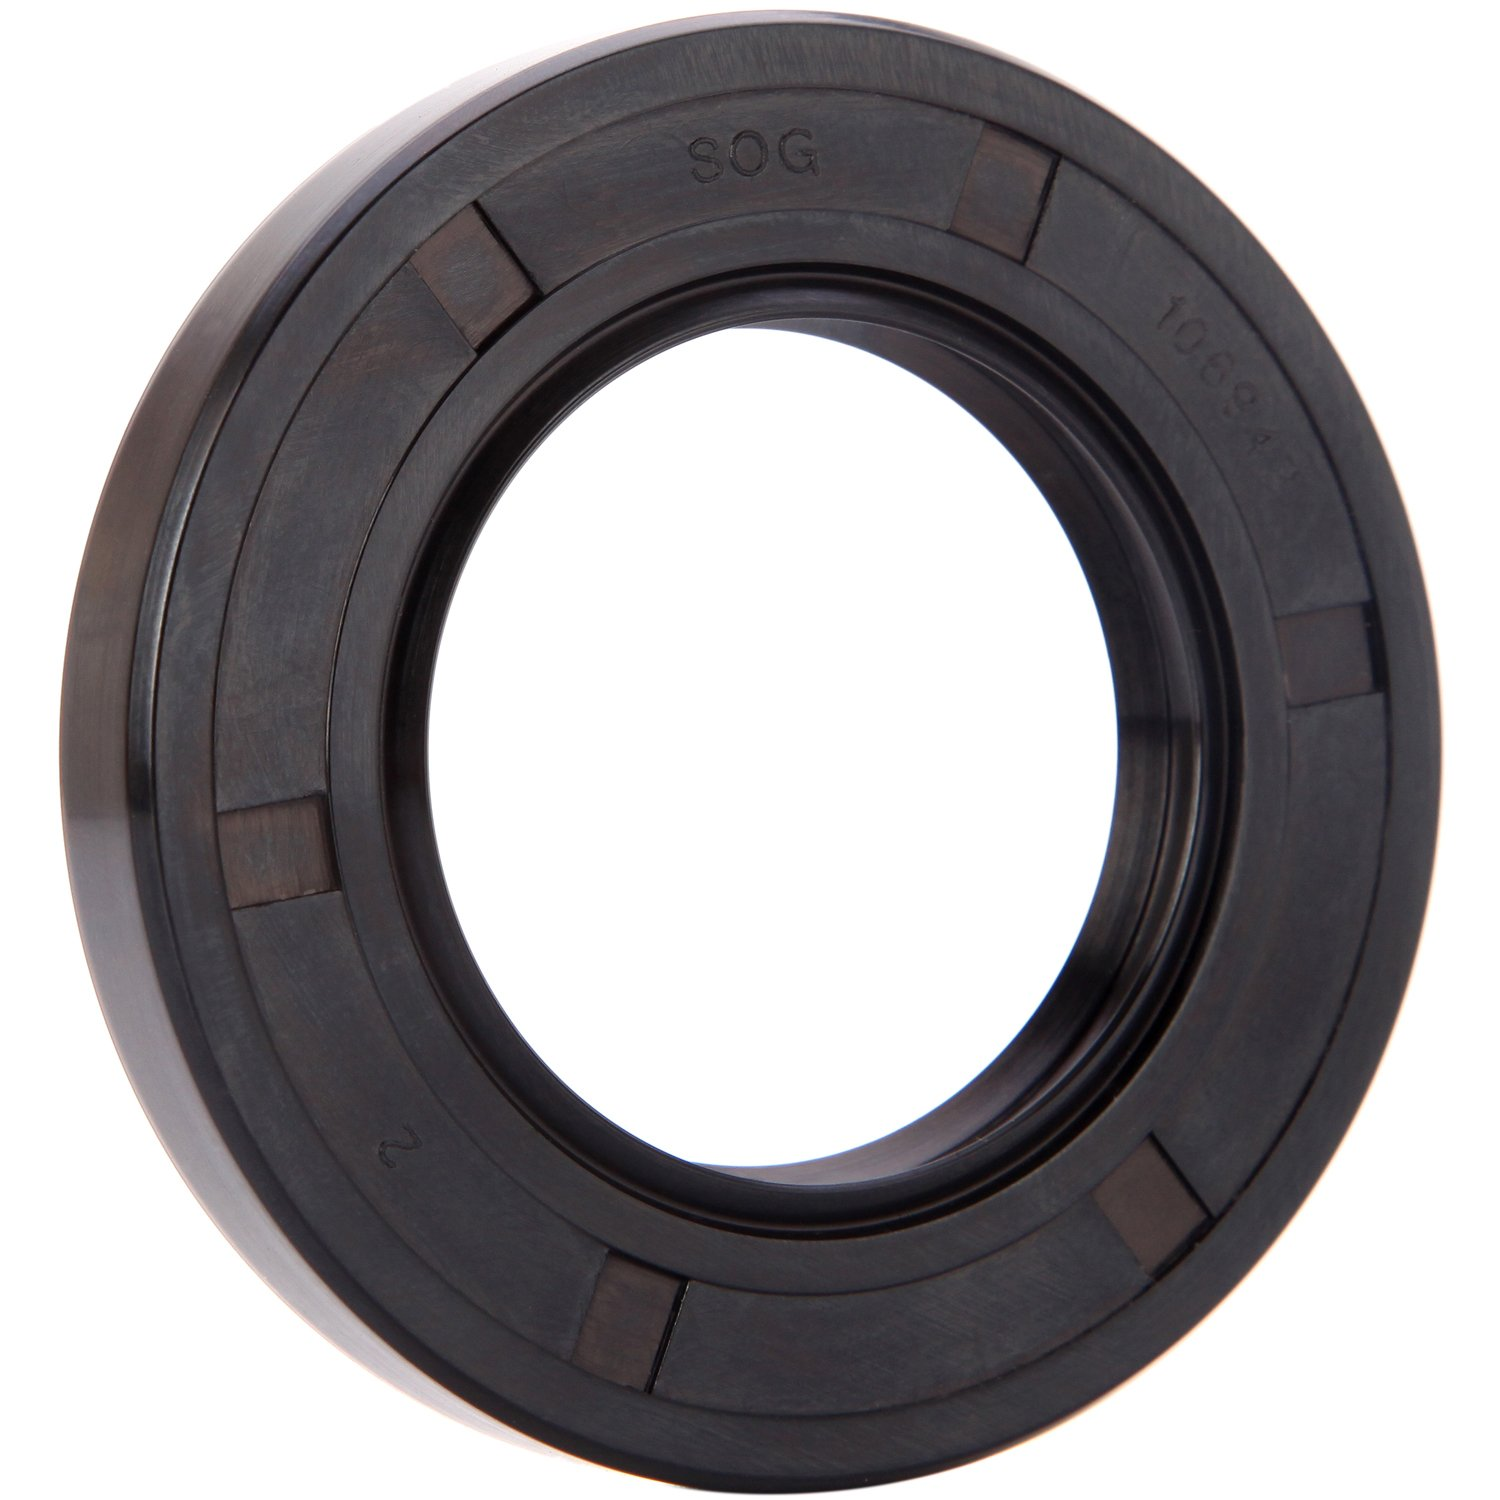 XiKe 134509510 Front Load Washer Tub Bearing & Seal Kit, Rotate Quiet and Durable Replacement for Frigidaire, Kenmore, Crosley Washer, AP3892114, 1191144, 134509500 Etc. by XiKe (Image #4)